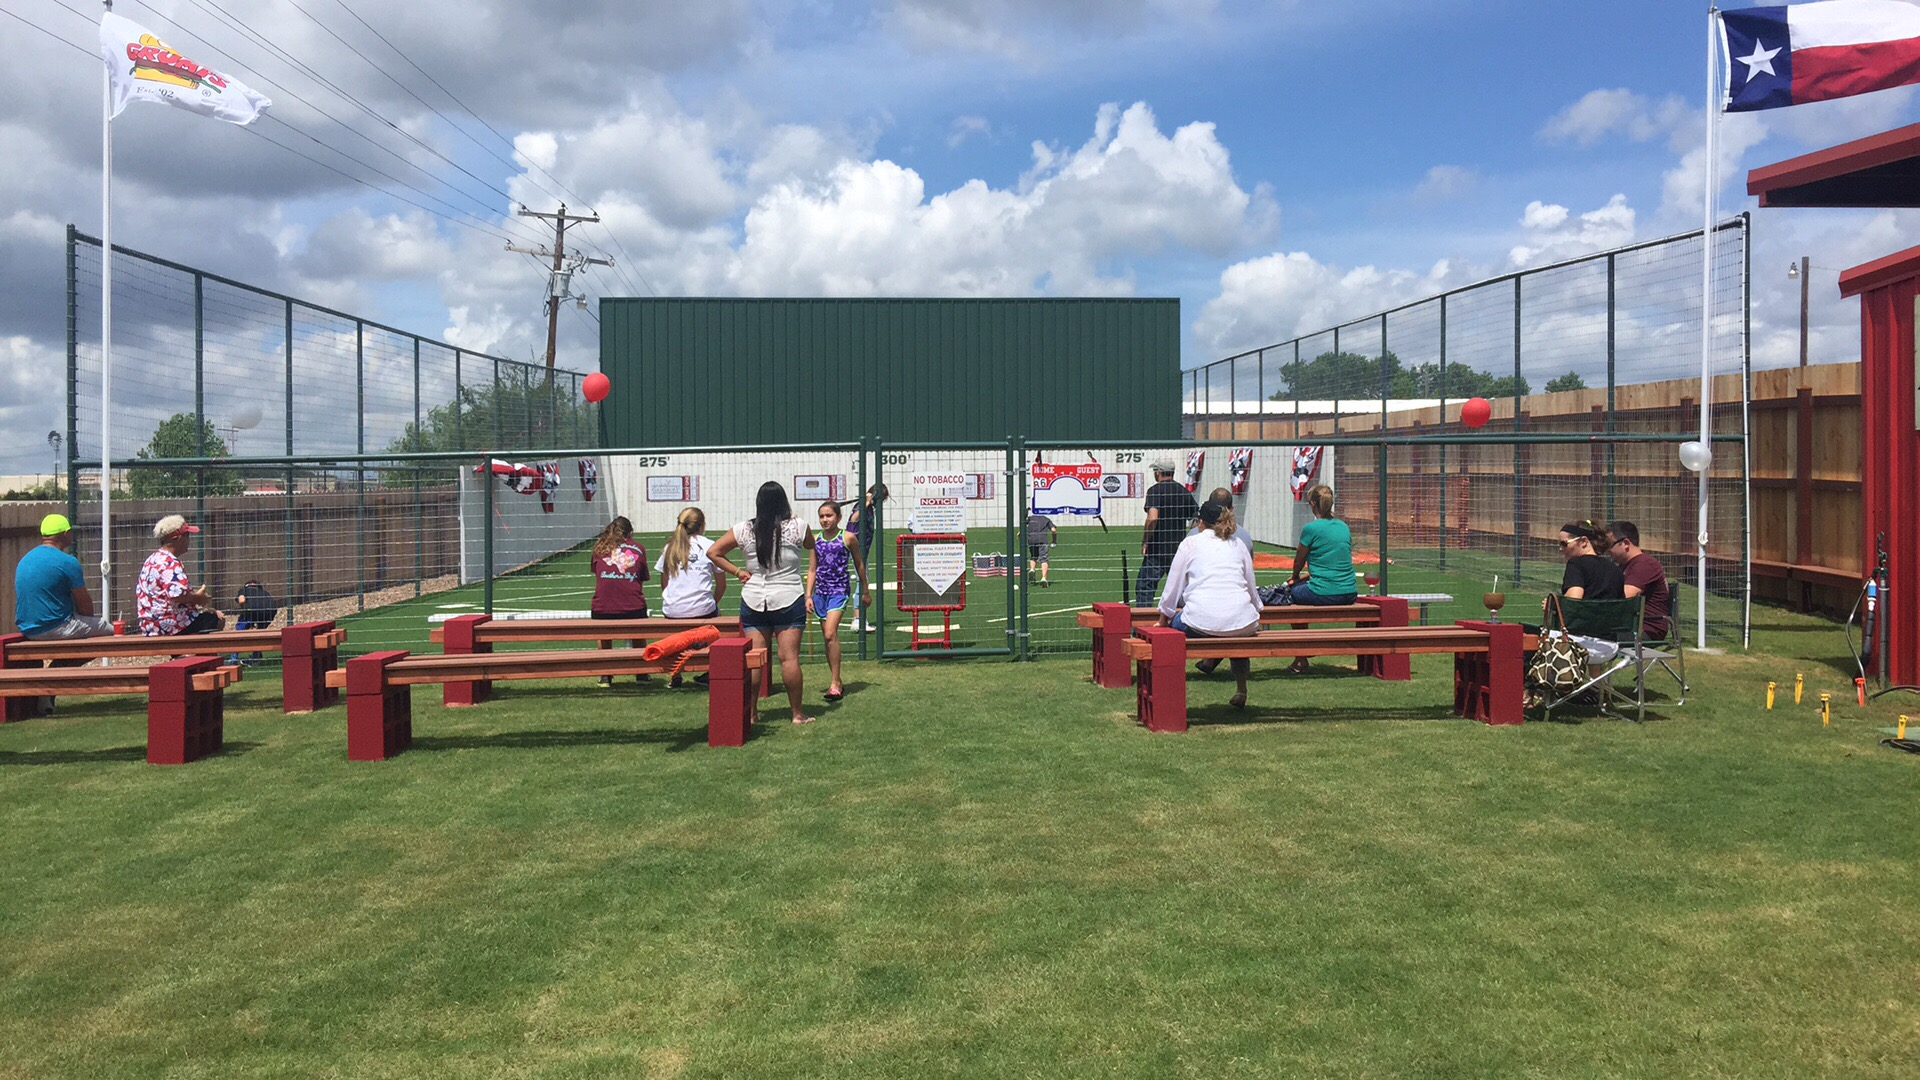 Opening Day of The BurgerPark in Granbury